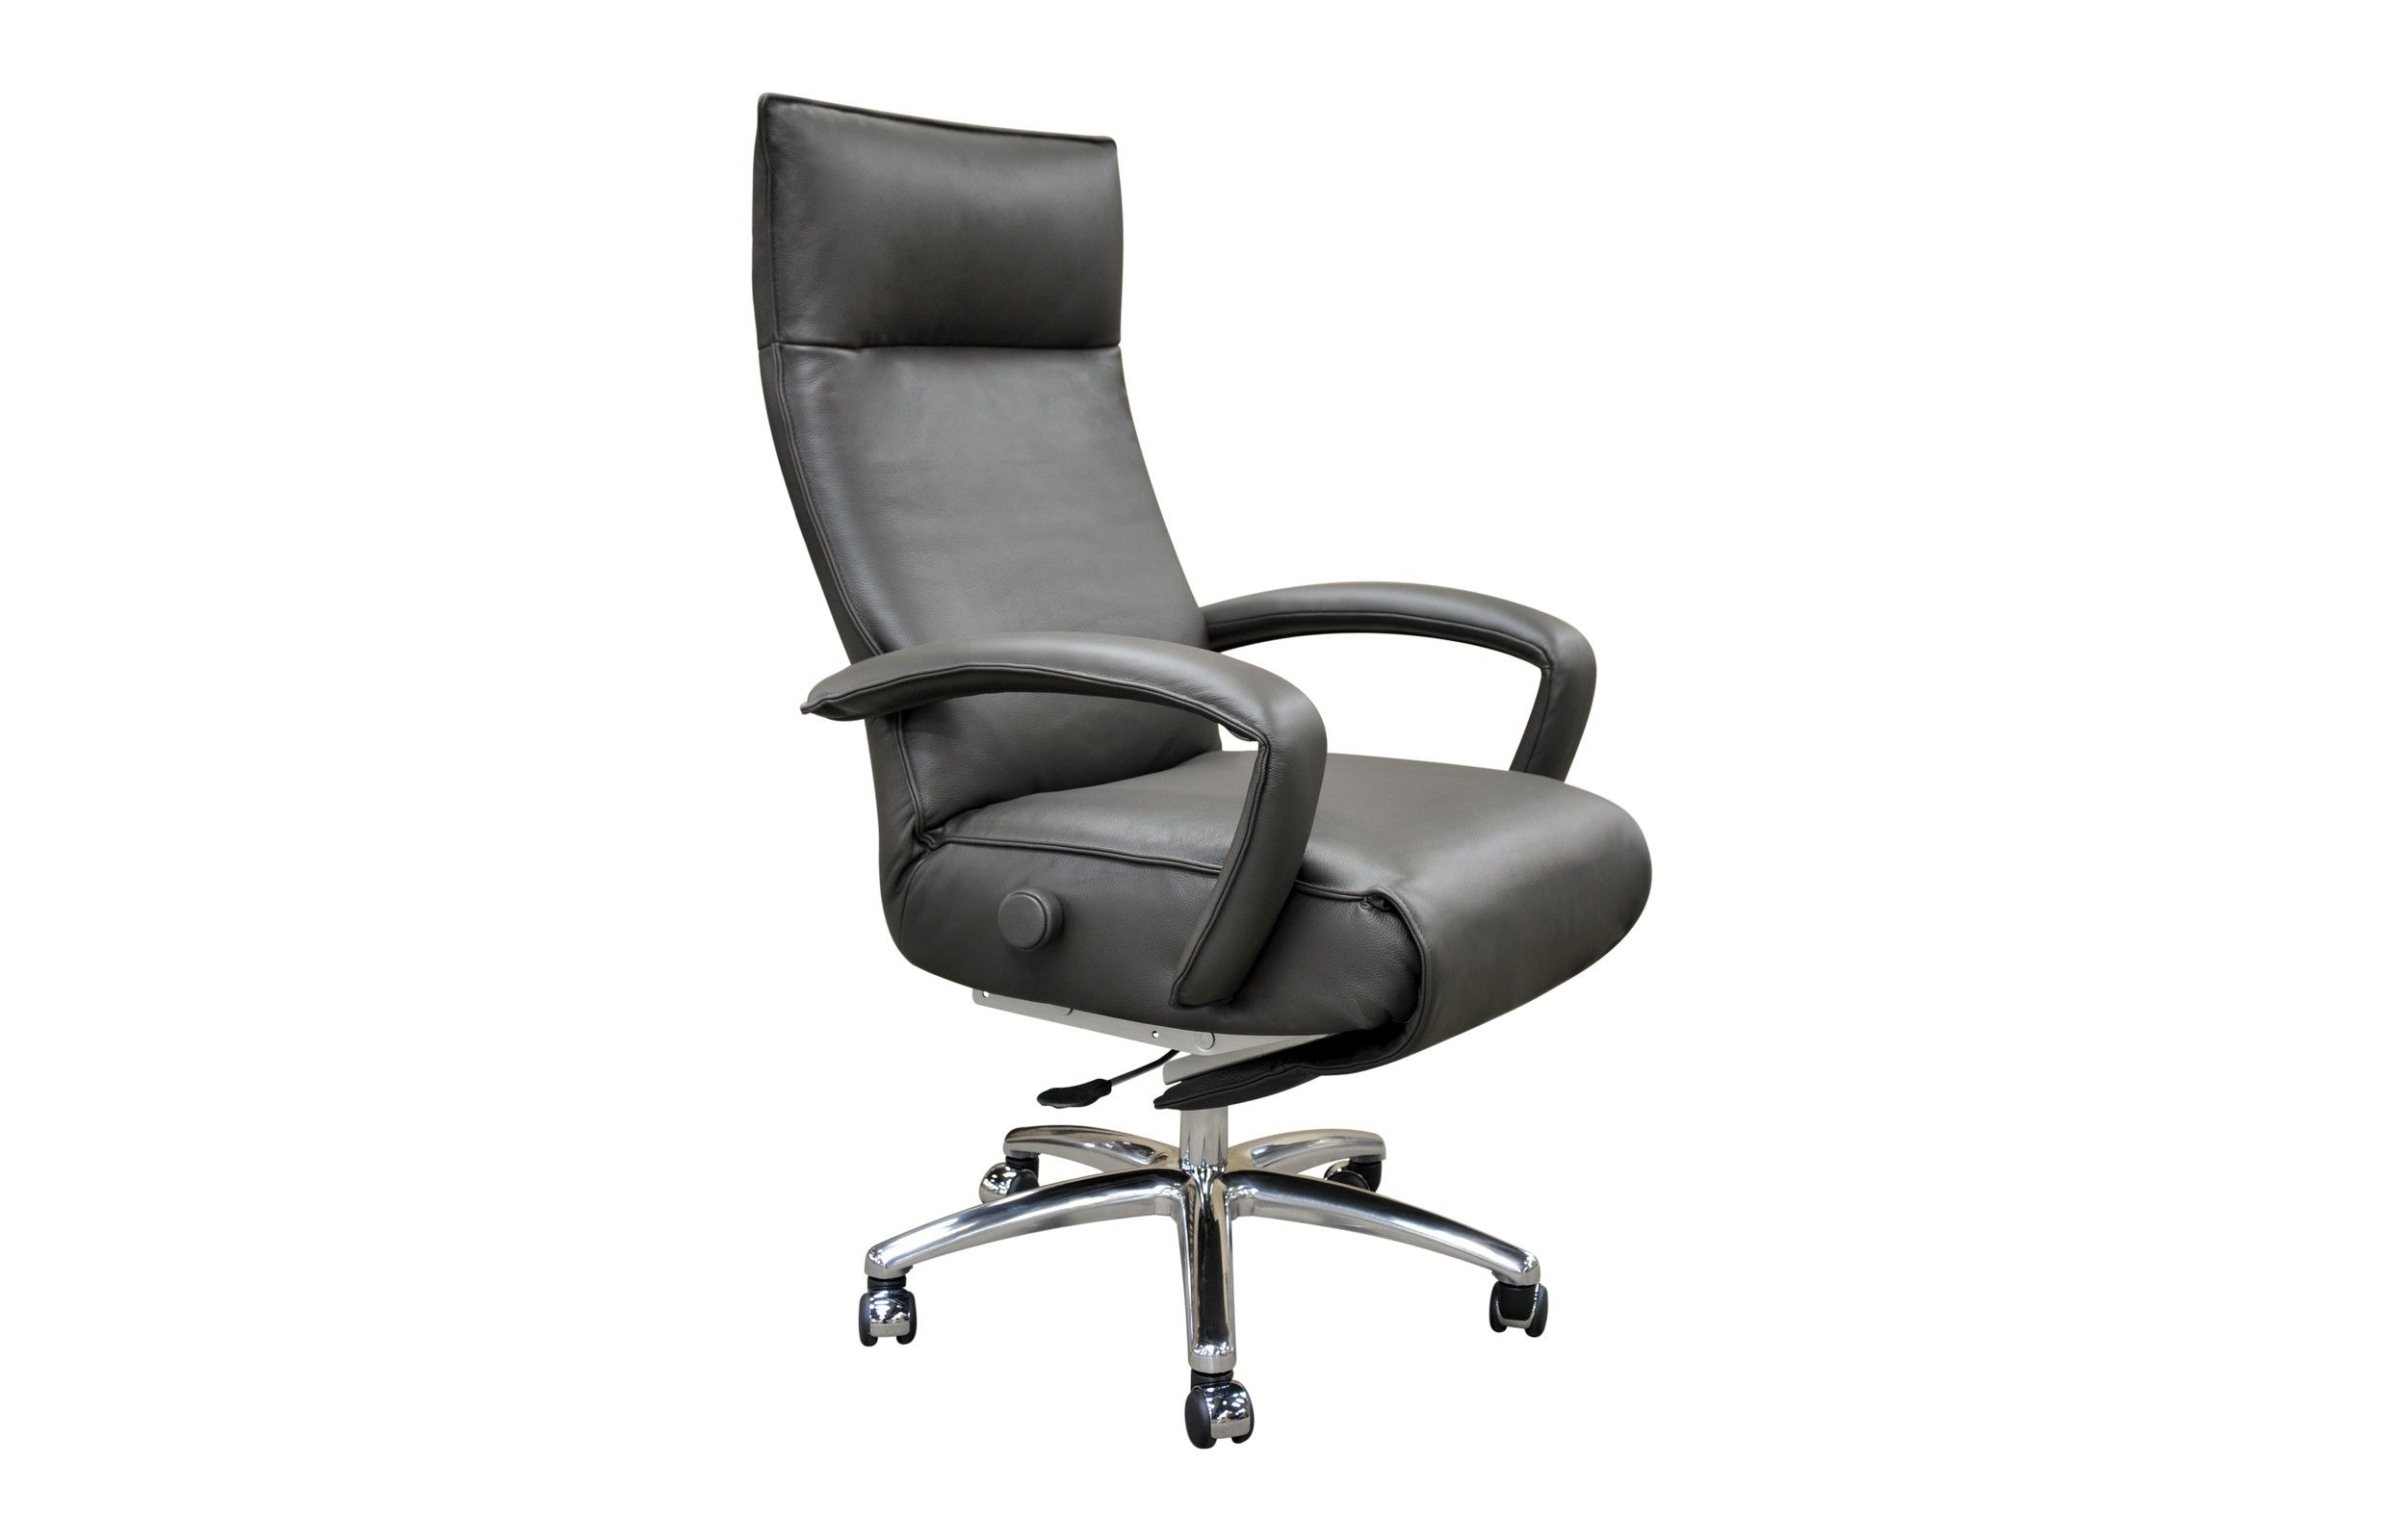 Gaga Executive Recliner Seating Recliner Stylish Recliners